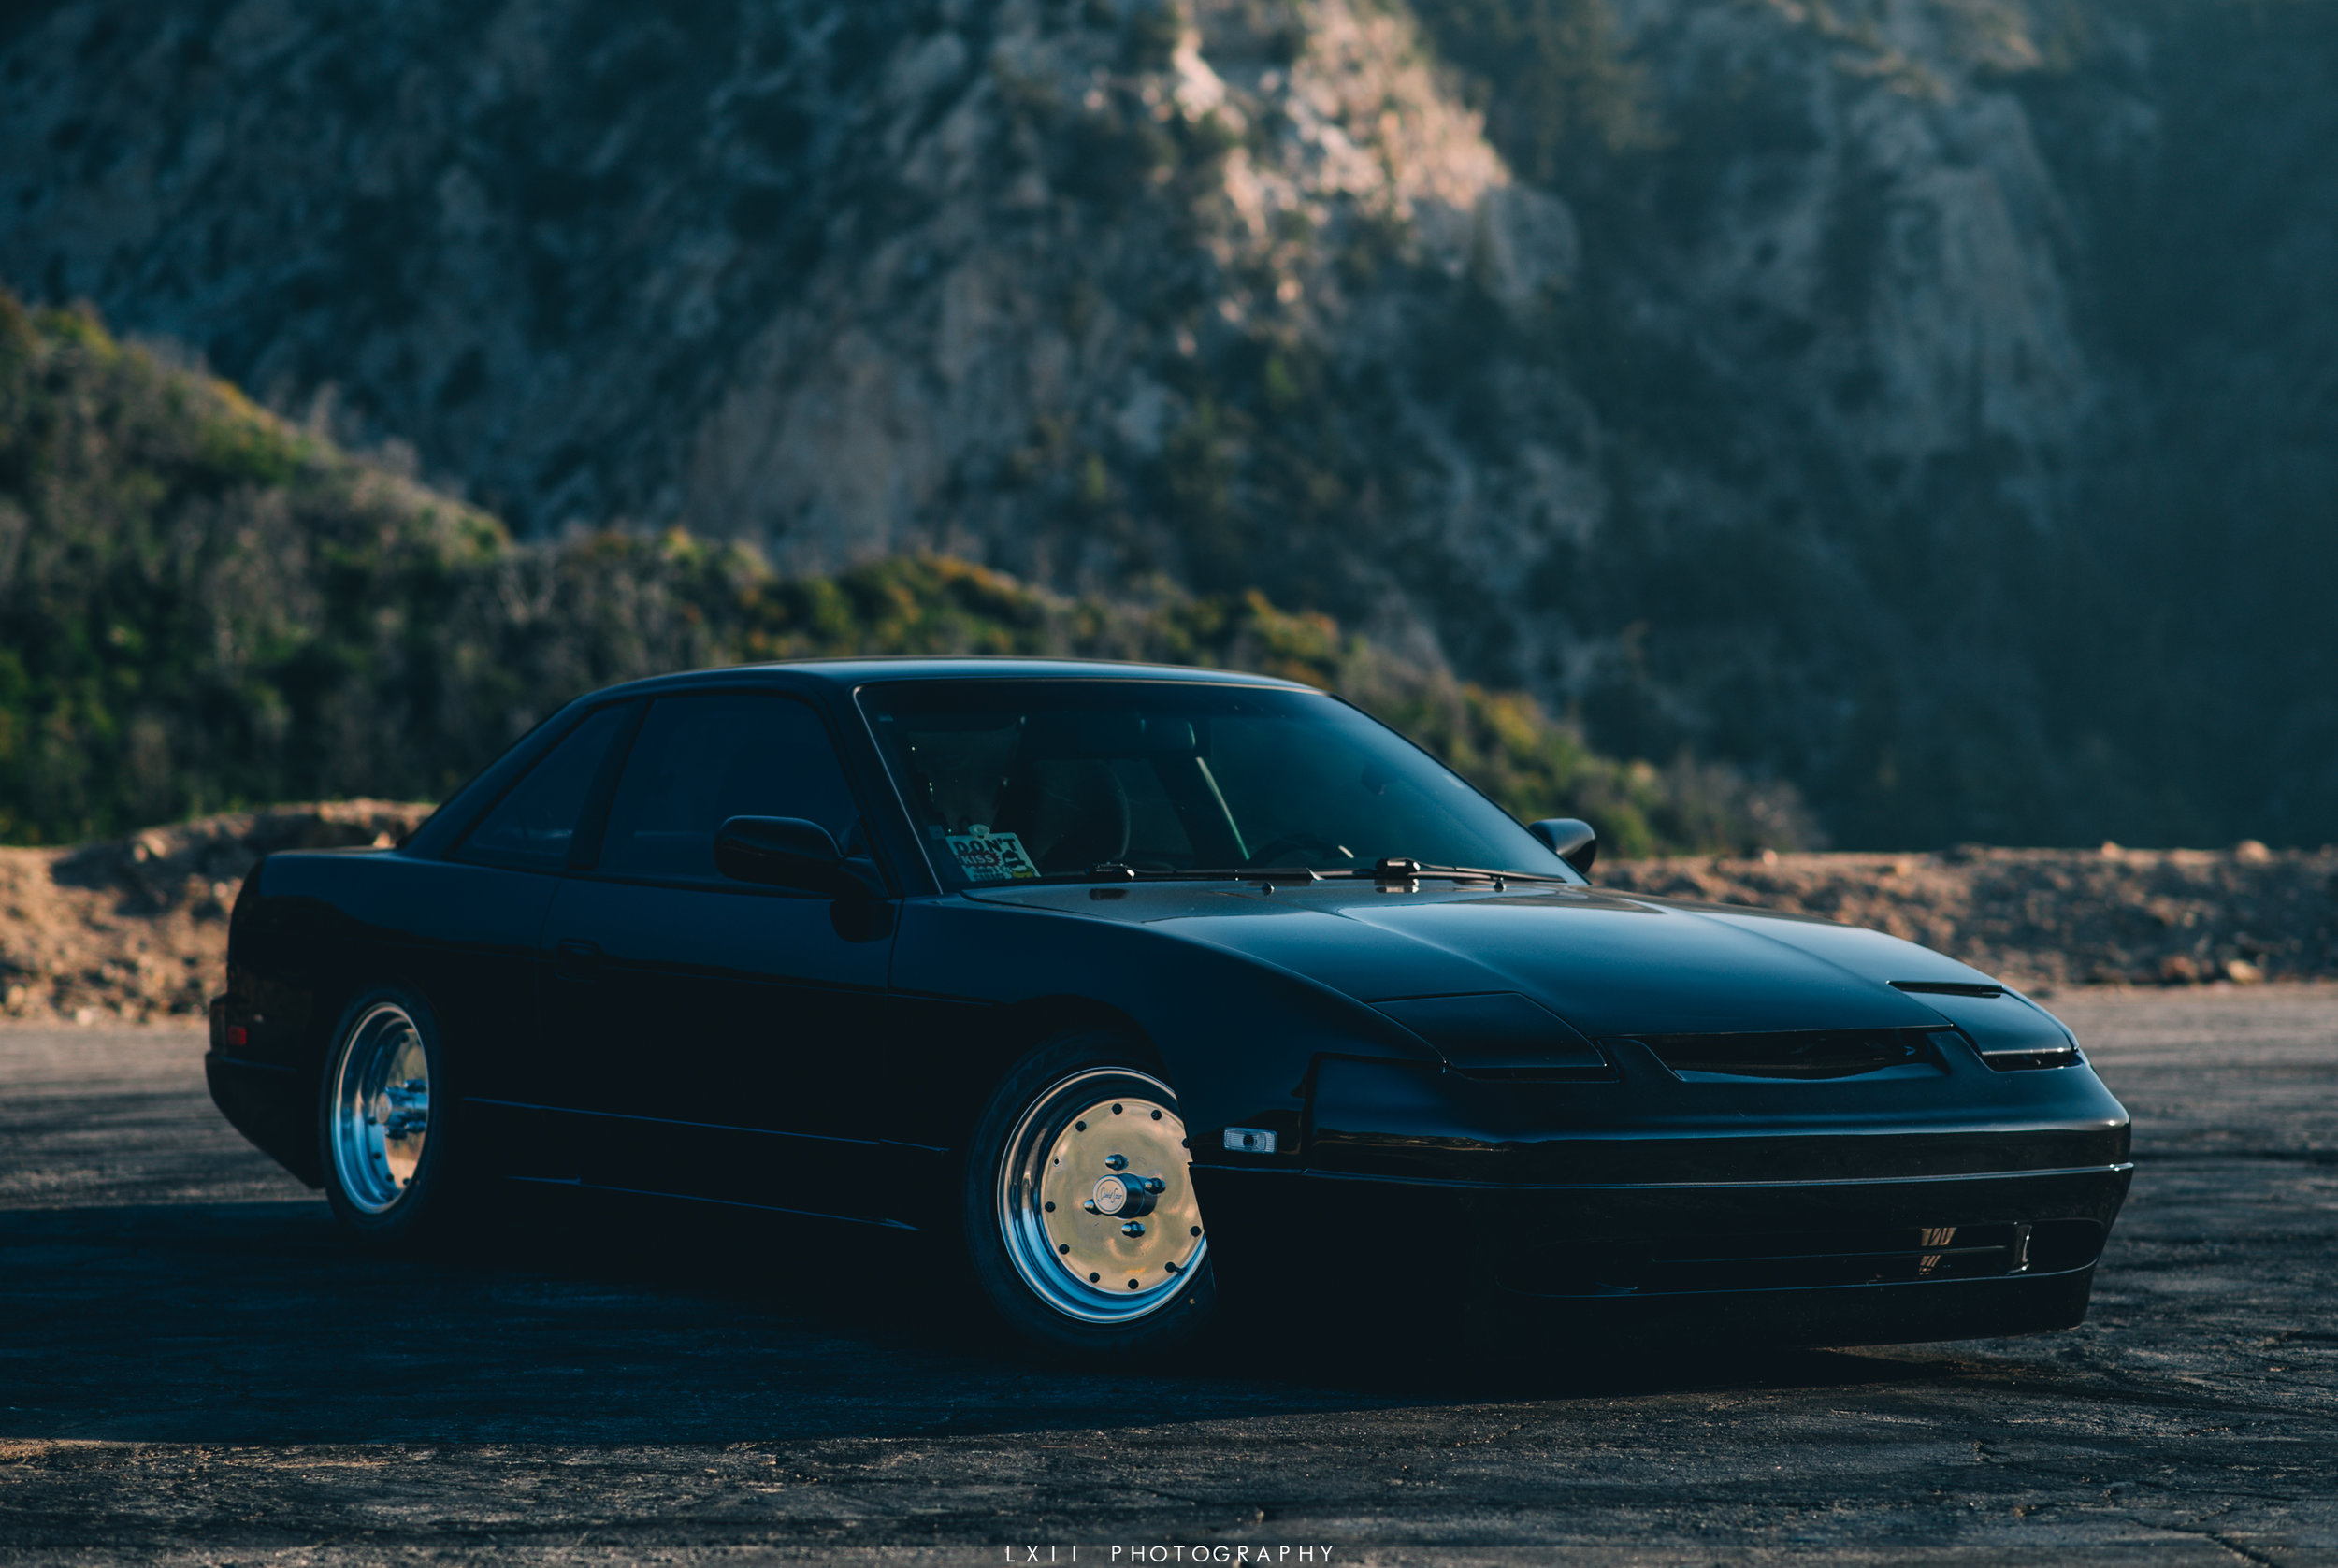 James' S13 on Angeles Crest Highway